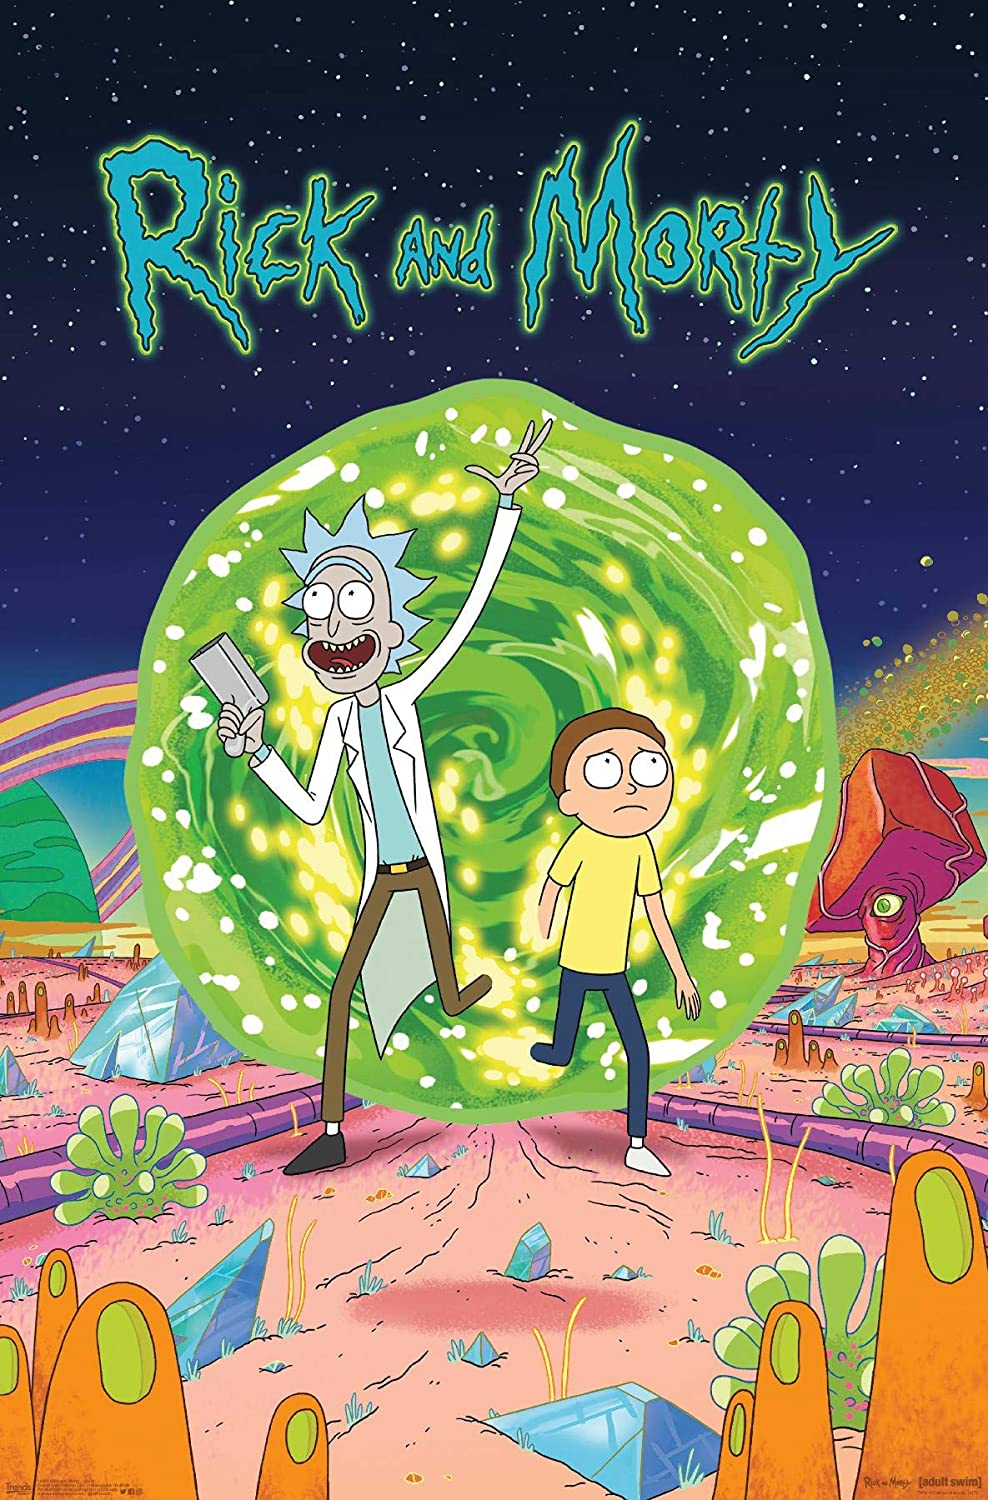 When and What Can We Expect From Rick and Morty Season 5?